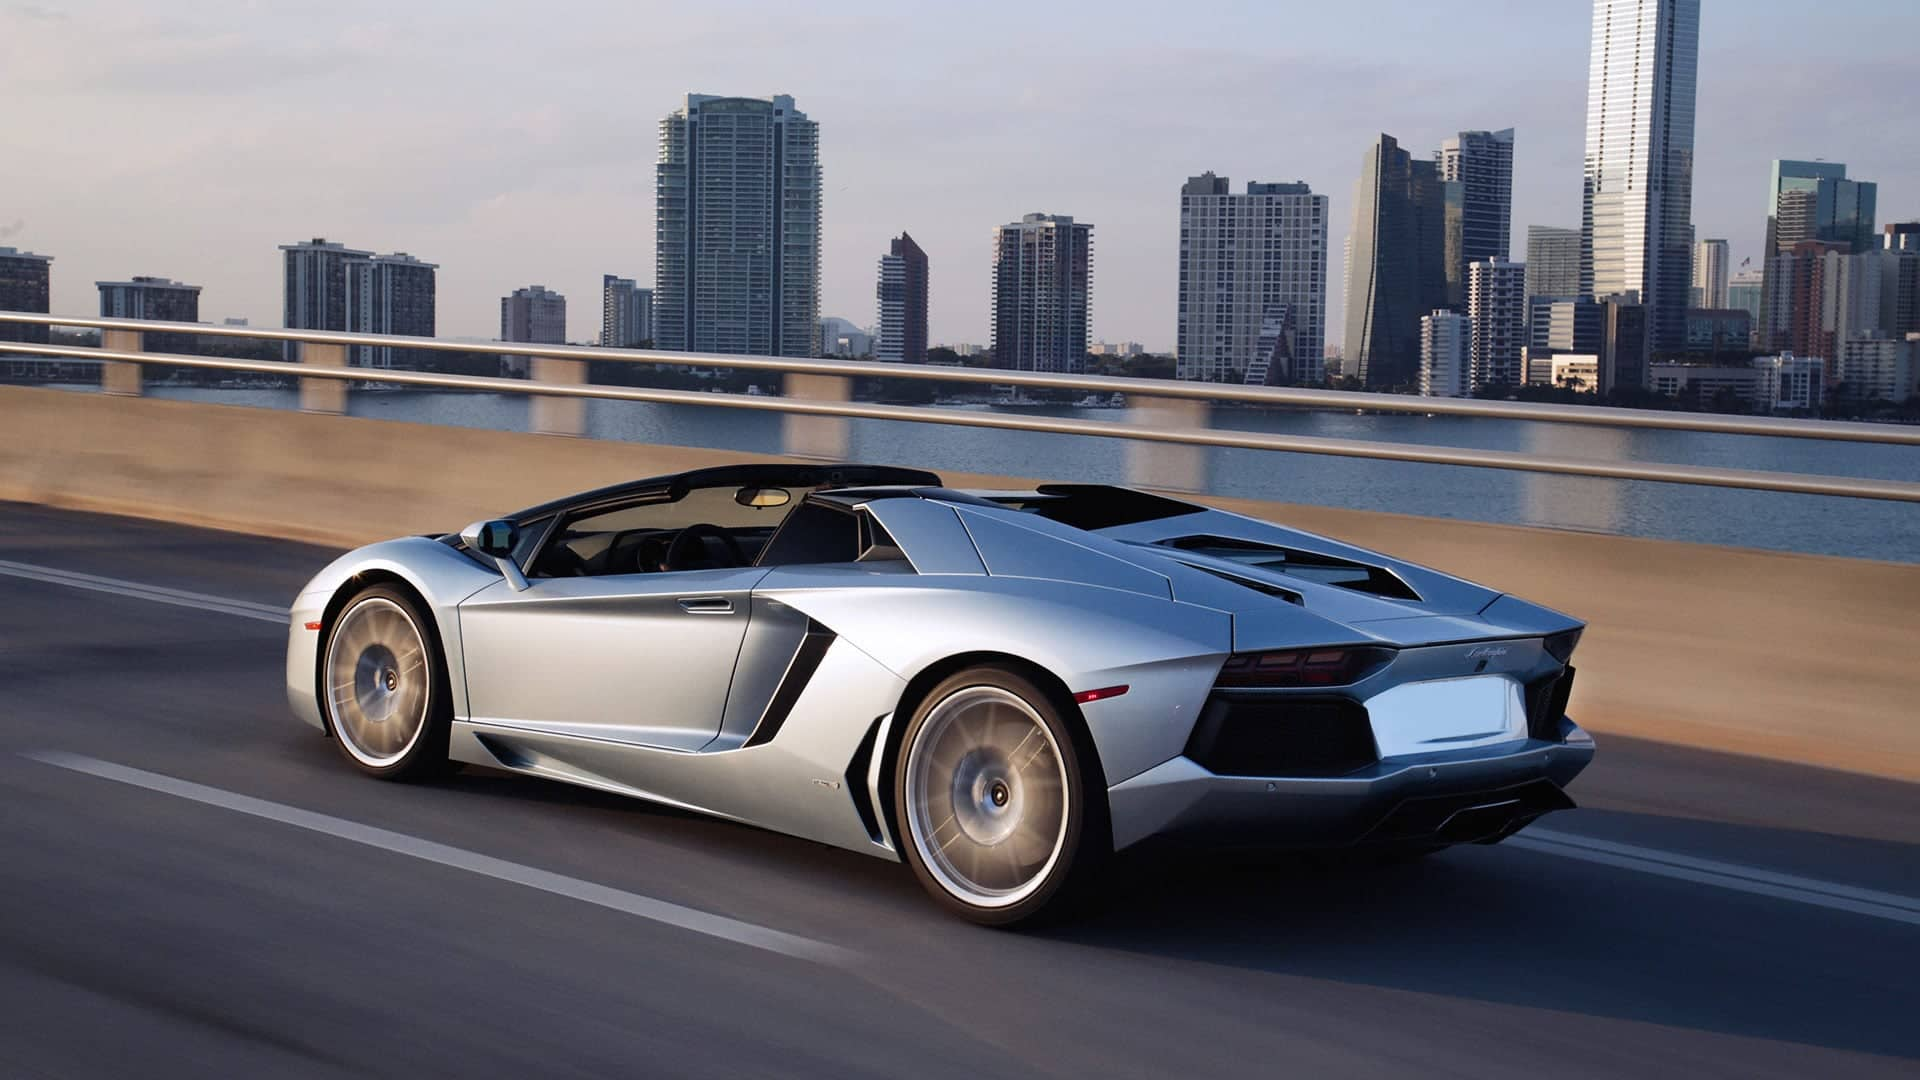 Lamborghini Aventador Roadster , Pictures, Videos